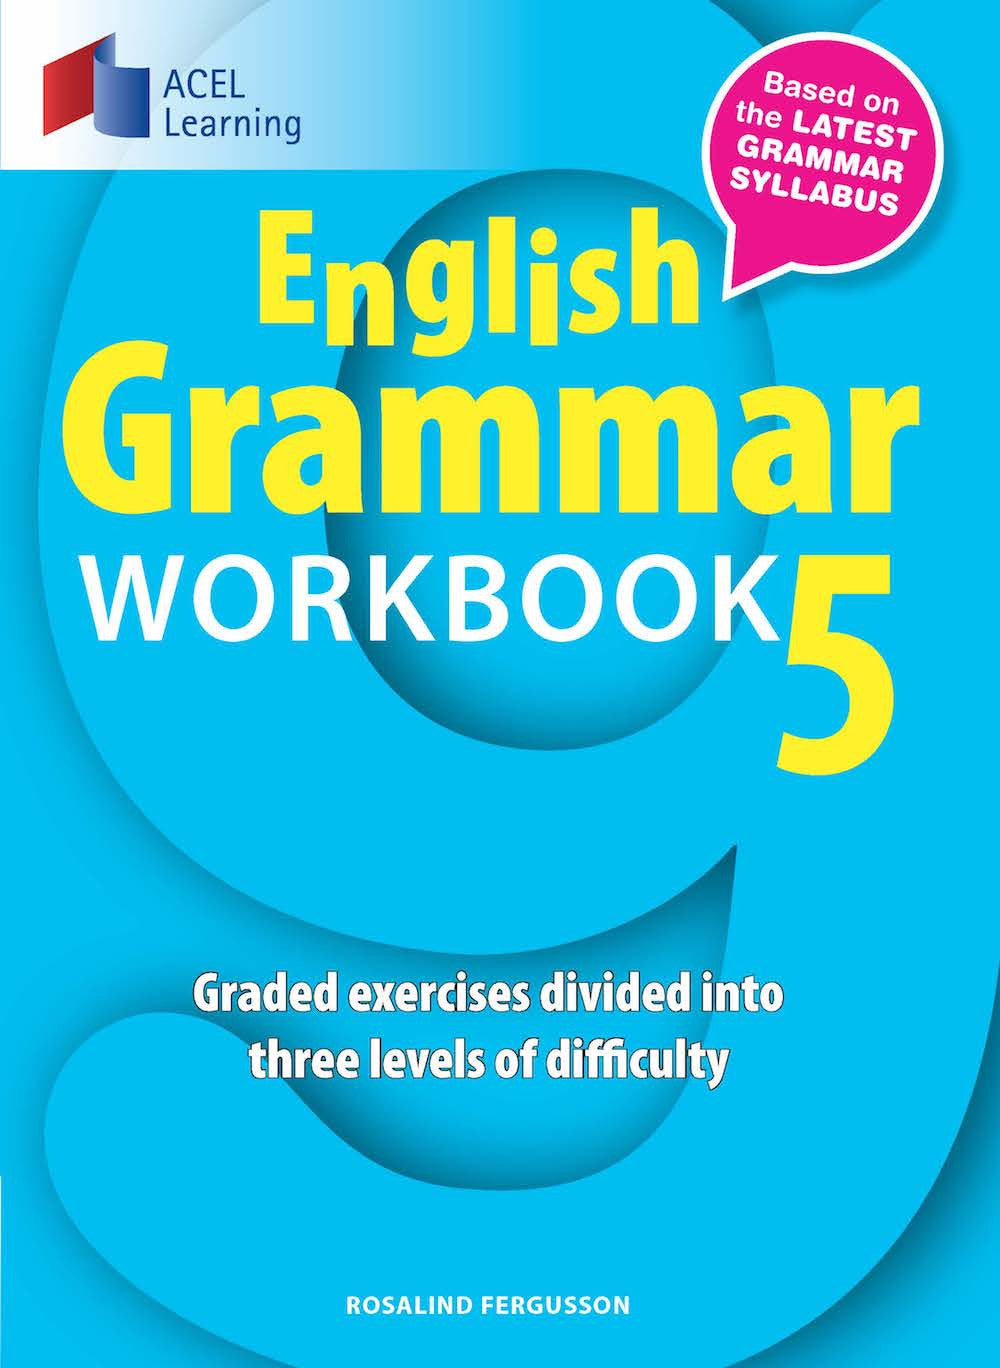 English Grammar Workbook 5